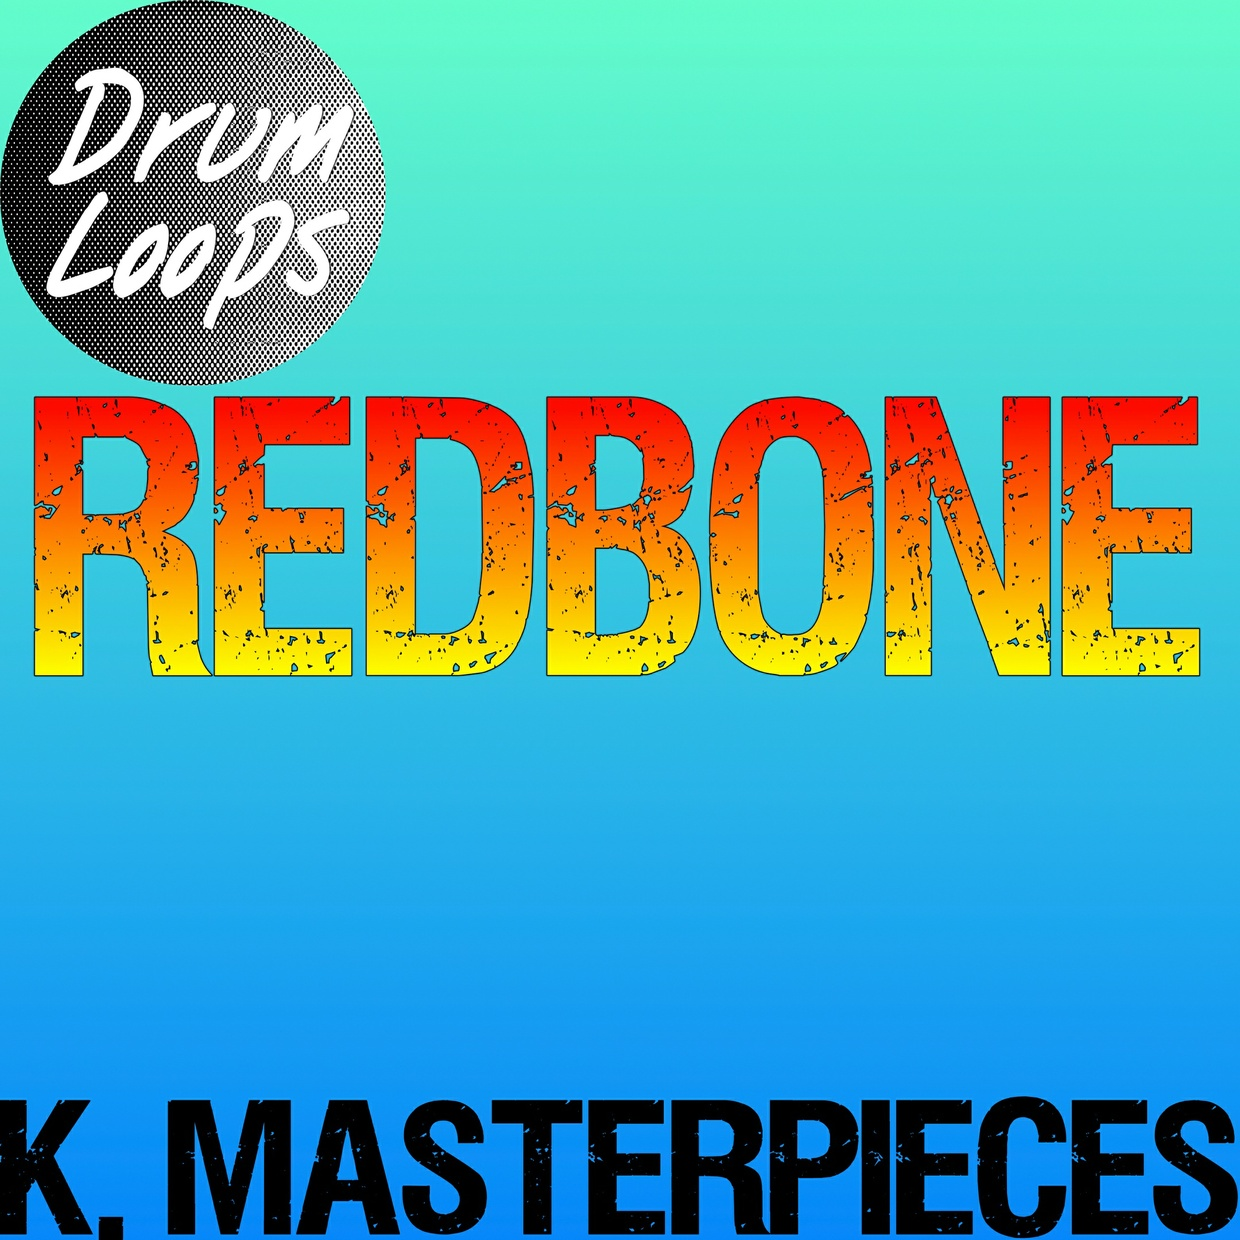 Redbone - Drum Loops - Inspired by Childish Gambino